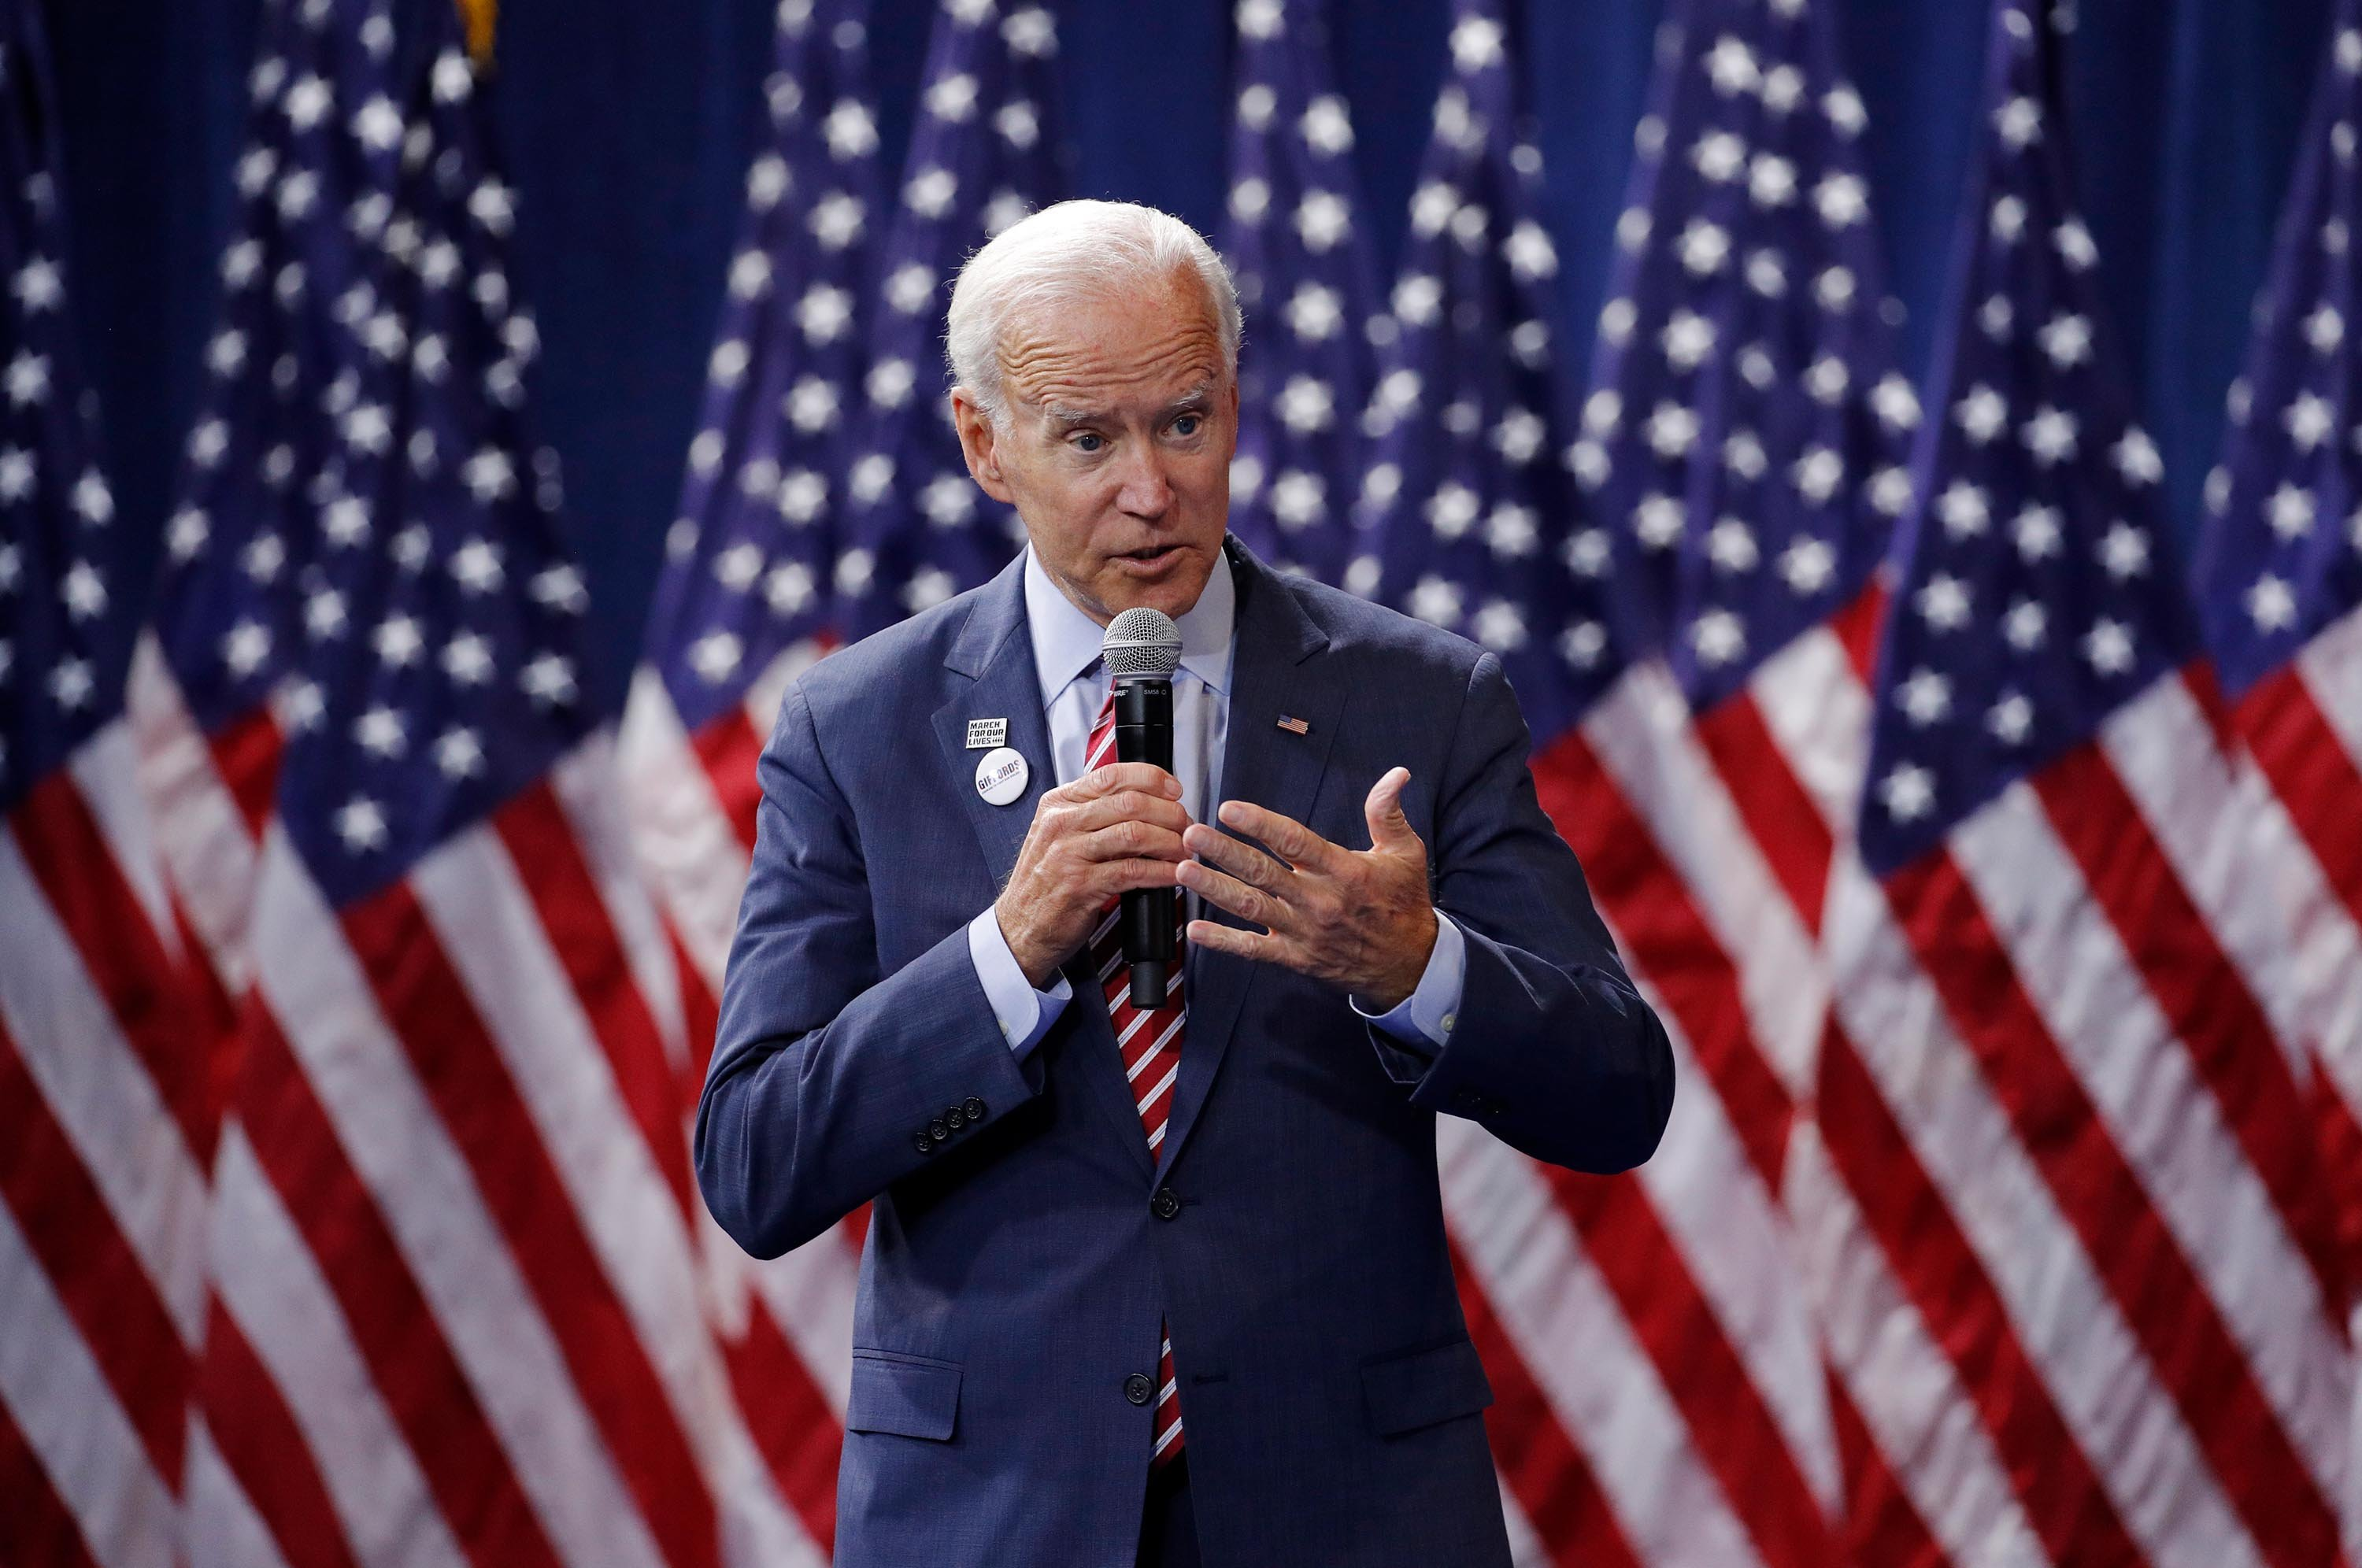 Joe Biden takes on Trump administration with plan to 'restore' government ethics